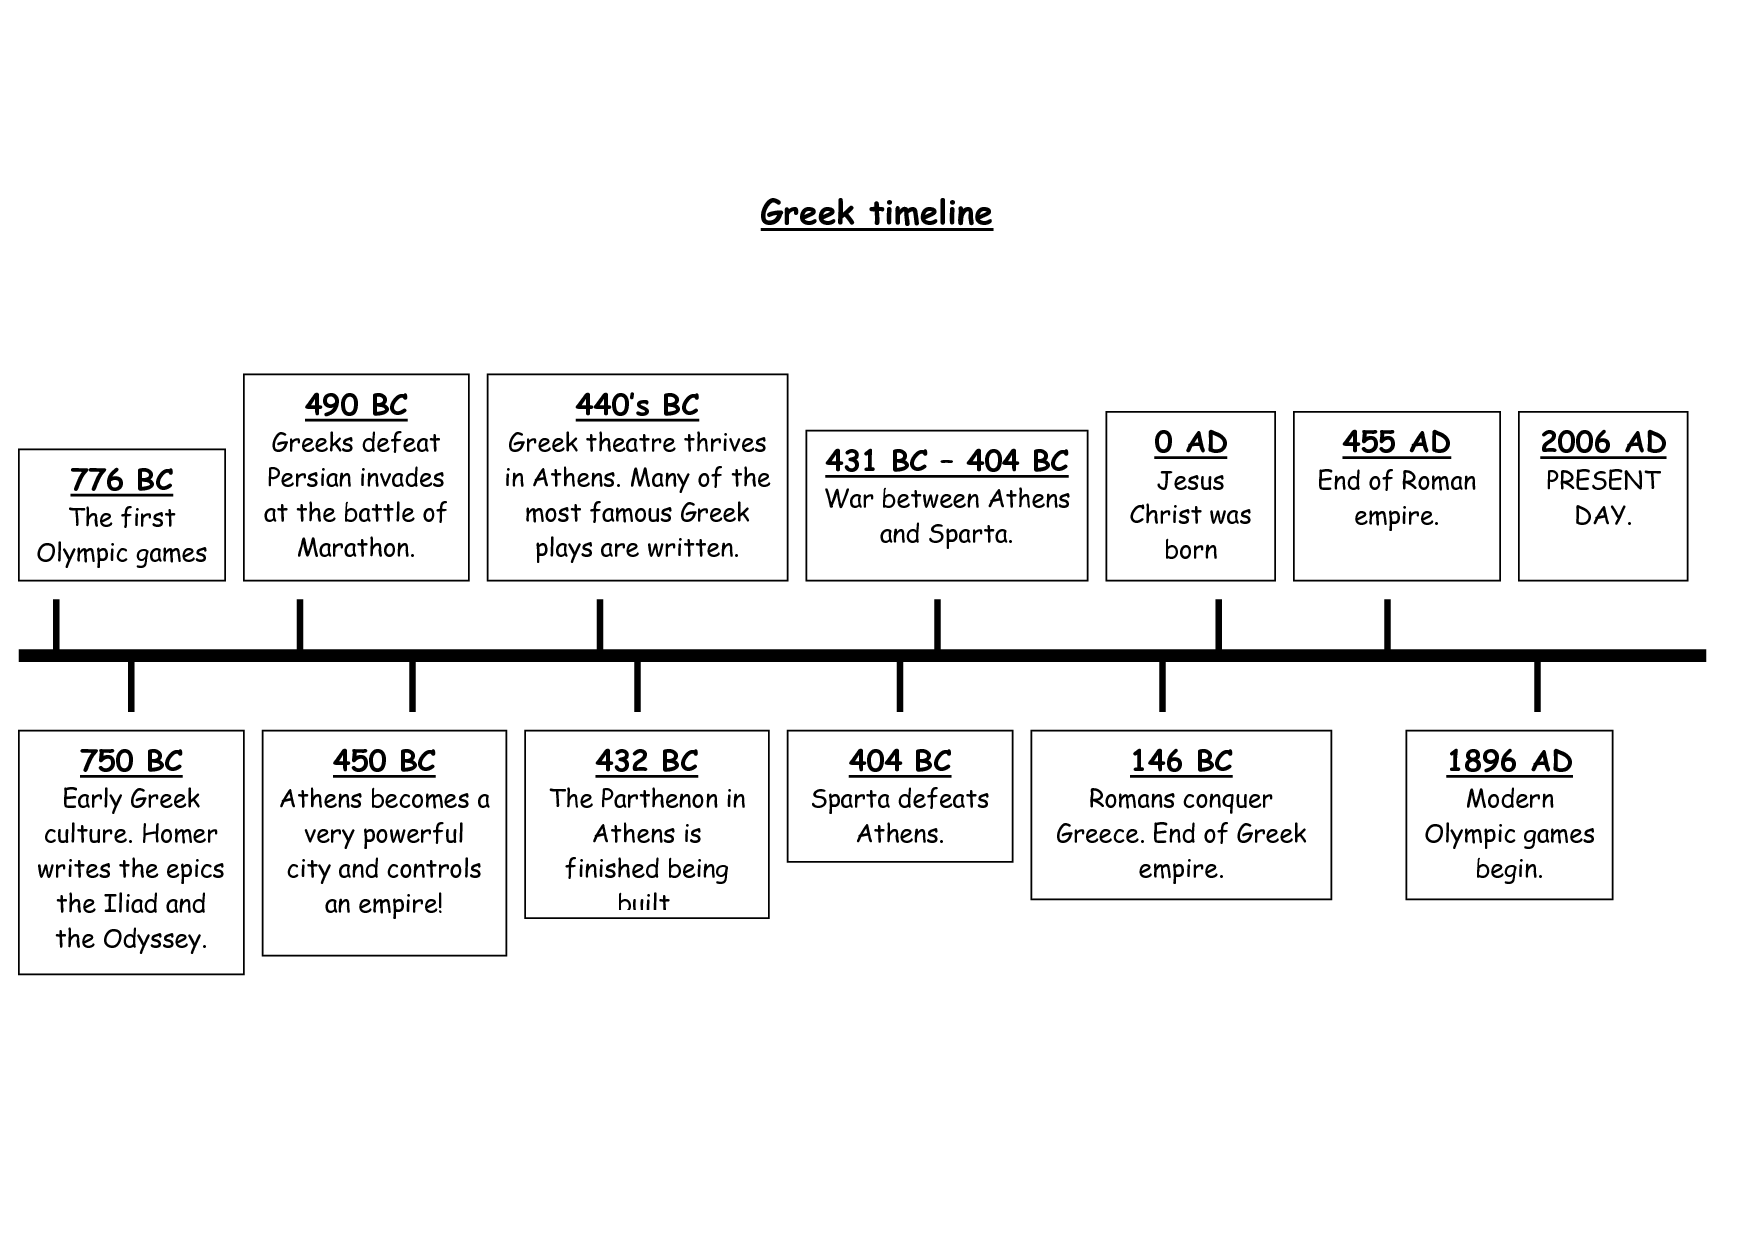 ancient timeline png atilde ideas for th grade ancient timeline png 1754atilde1511240